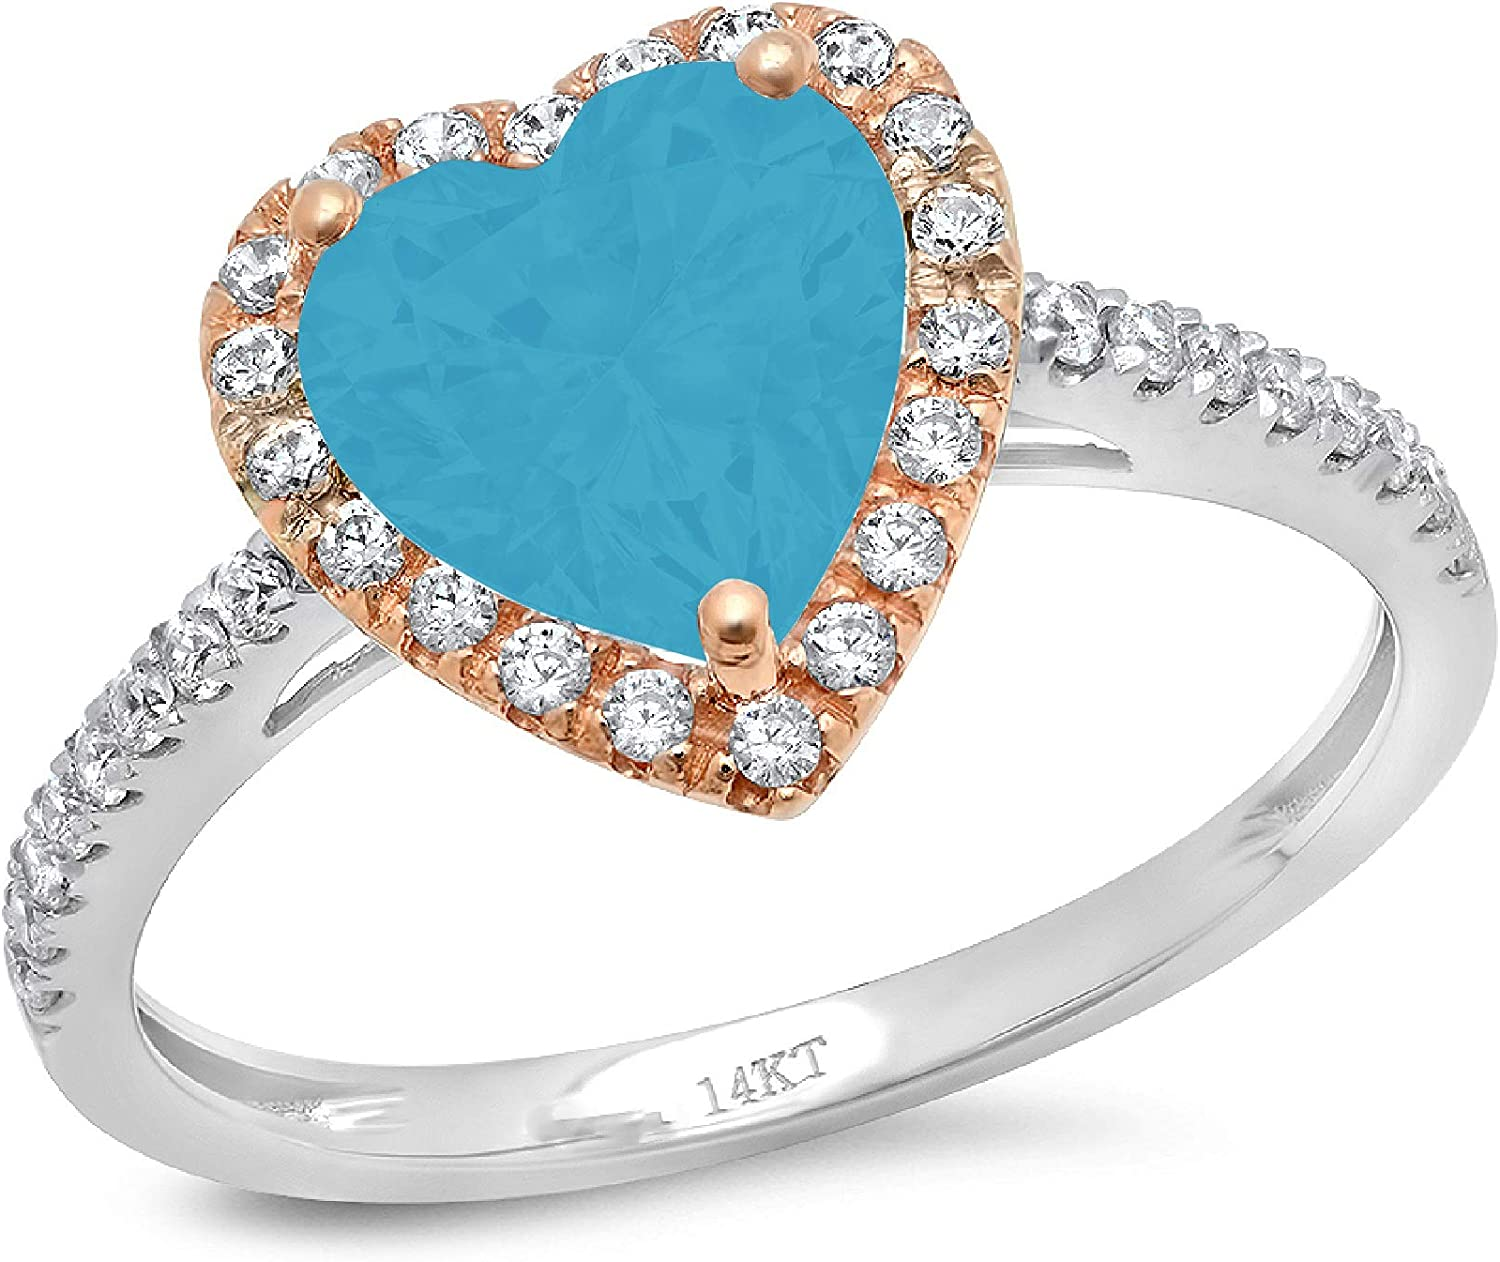 2.3ct Brilliant Heart Cut Solitaire with Accent Halo Flawless Ideal VVS1 Simulated Blue Turquoise CZ Engagement Promise Statement Anniversary Bridal Wedding Designer Ring 14k 2 Tone Gold